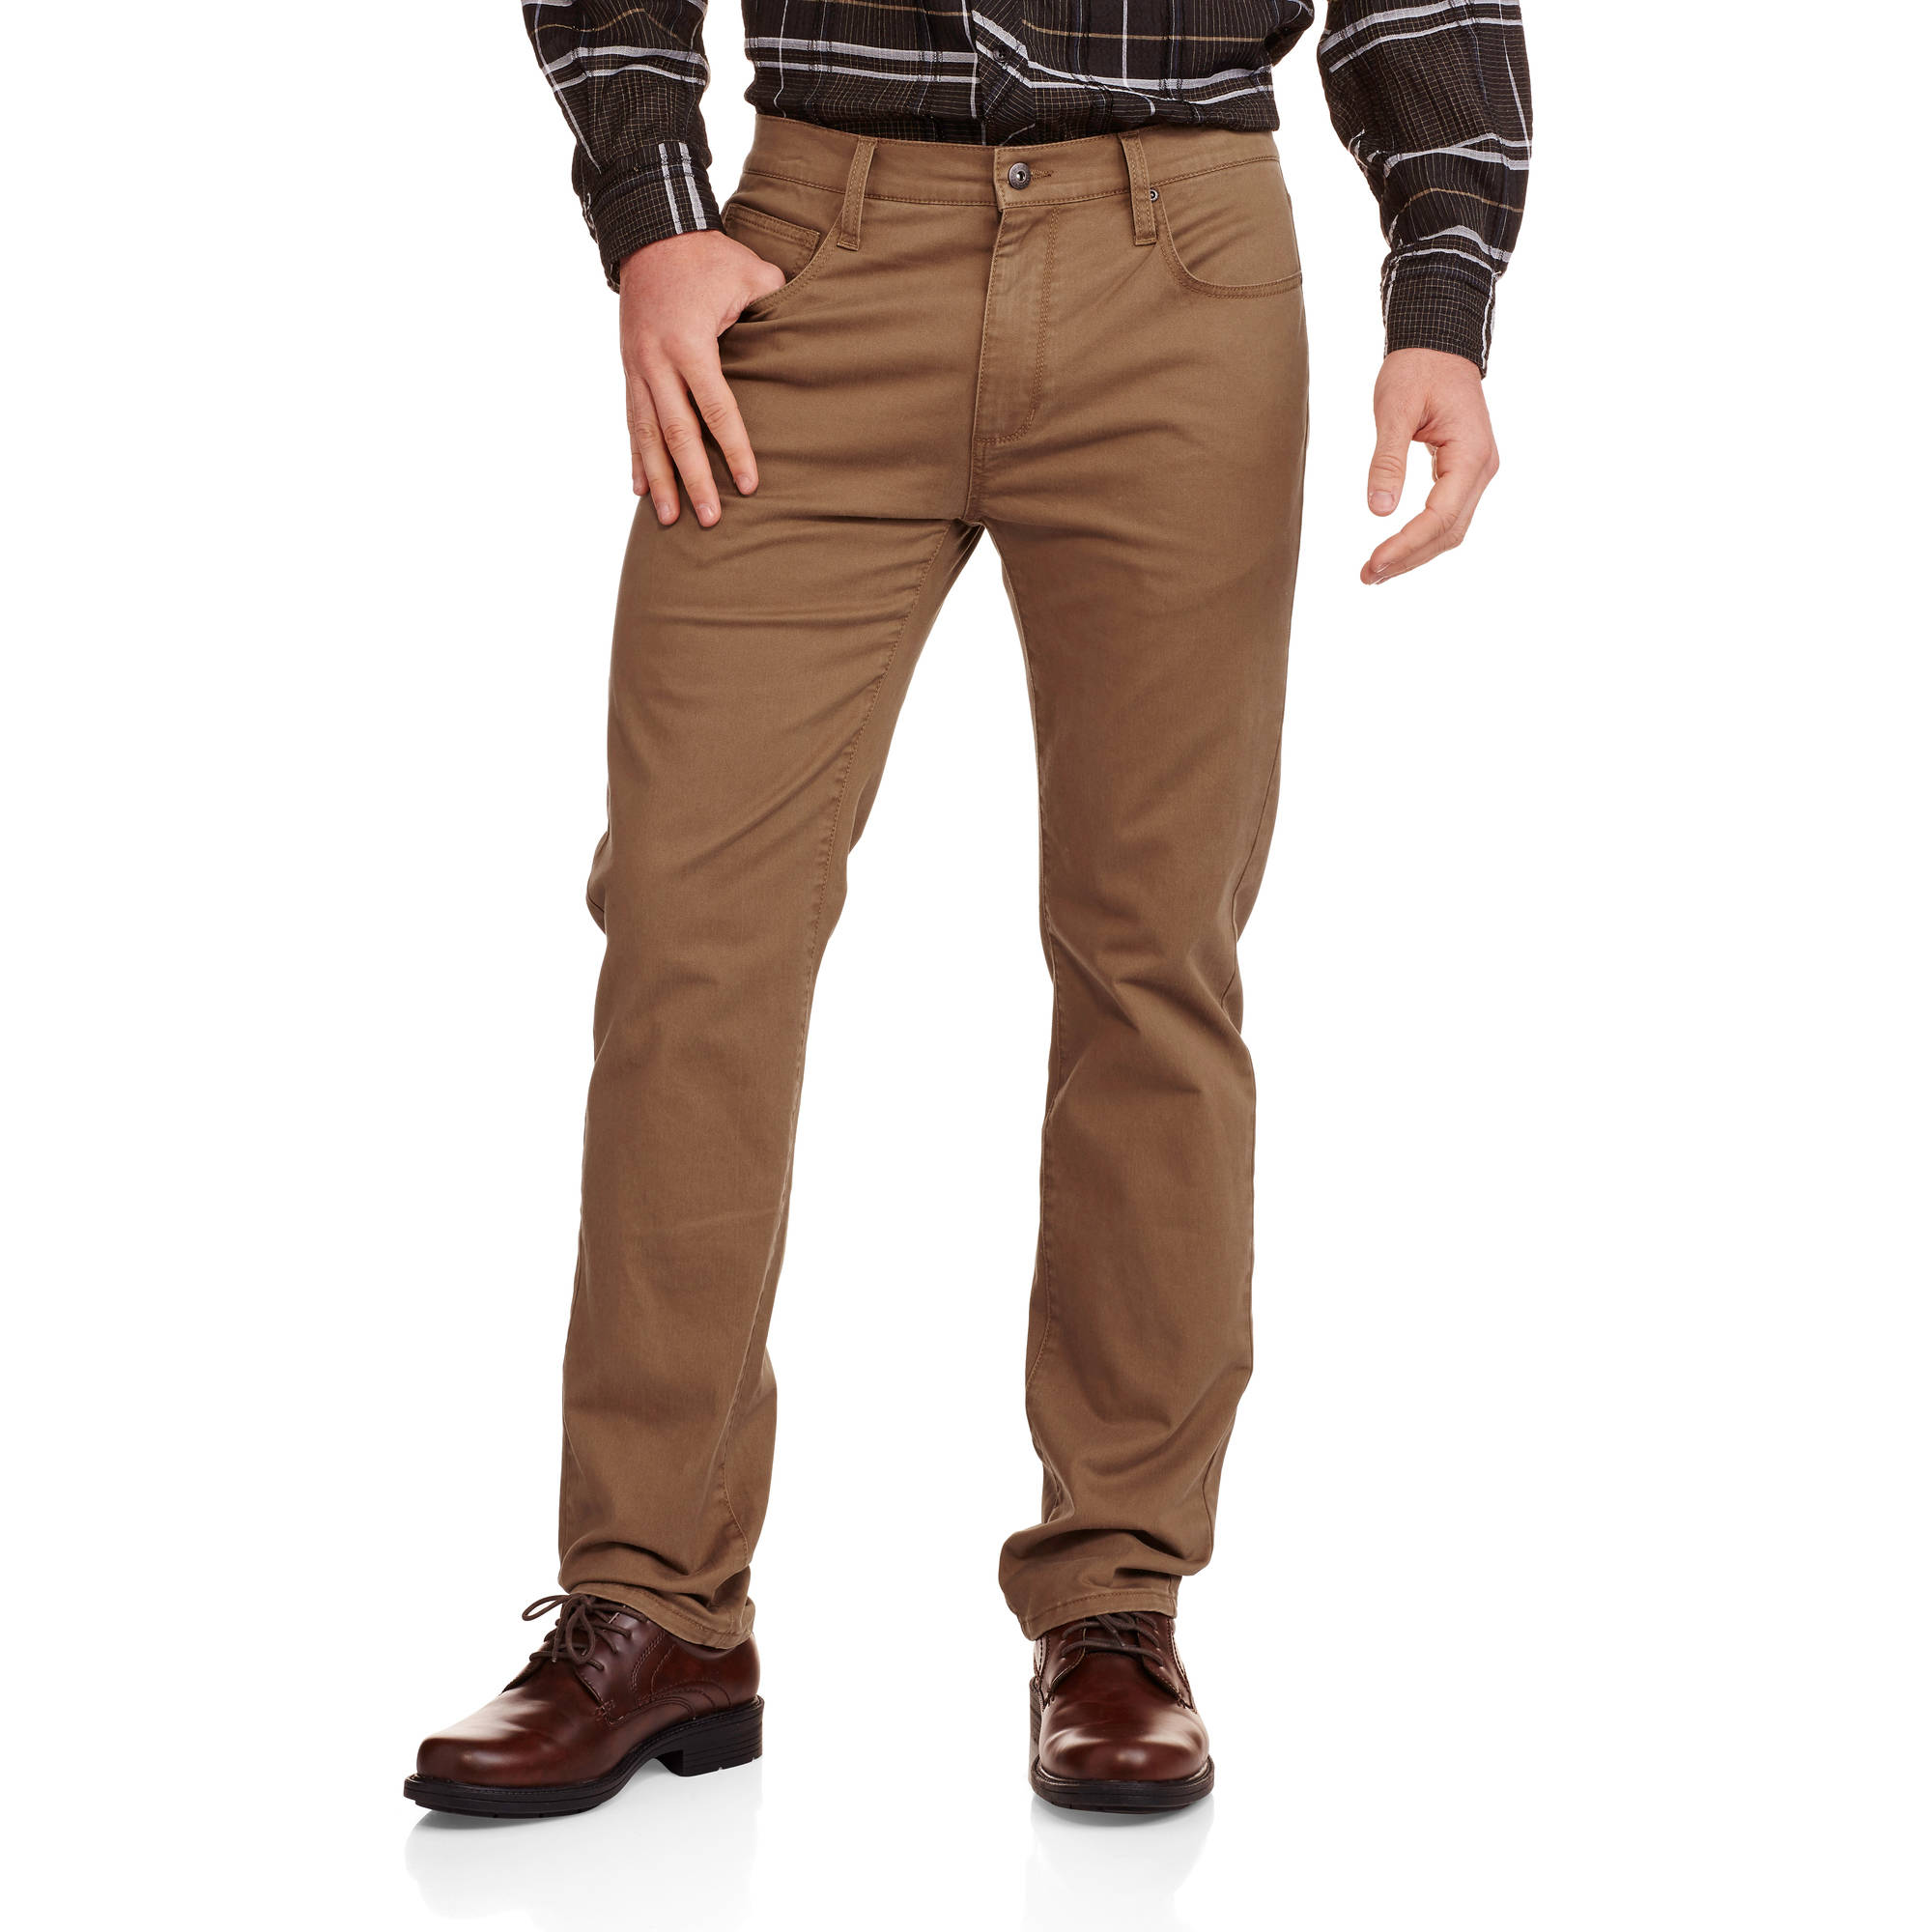 No Boundaries Men's 5 Pocket Stretch Twill Pants